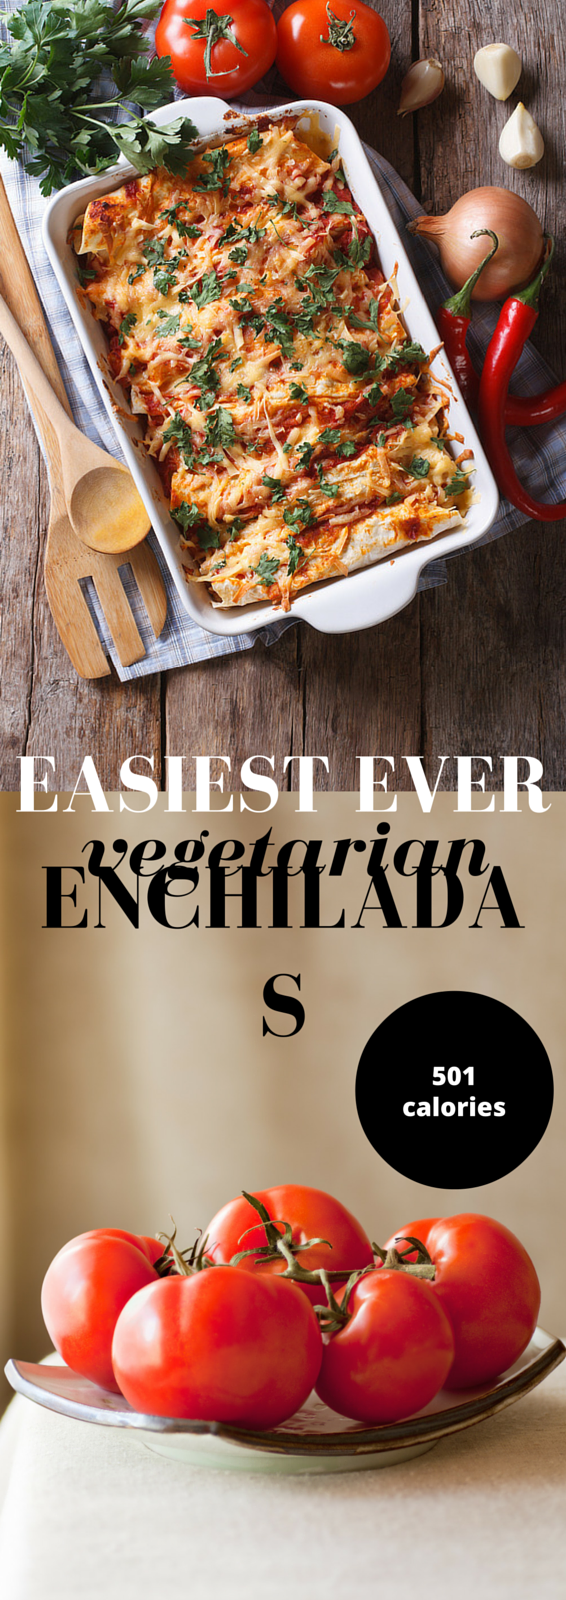 This vegetarian black bean enchilada recipe is so easy. It uses frozen bell peppers, taco seasoning, and salsa! No enchilada sauce required.